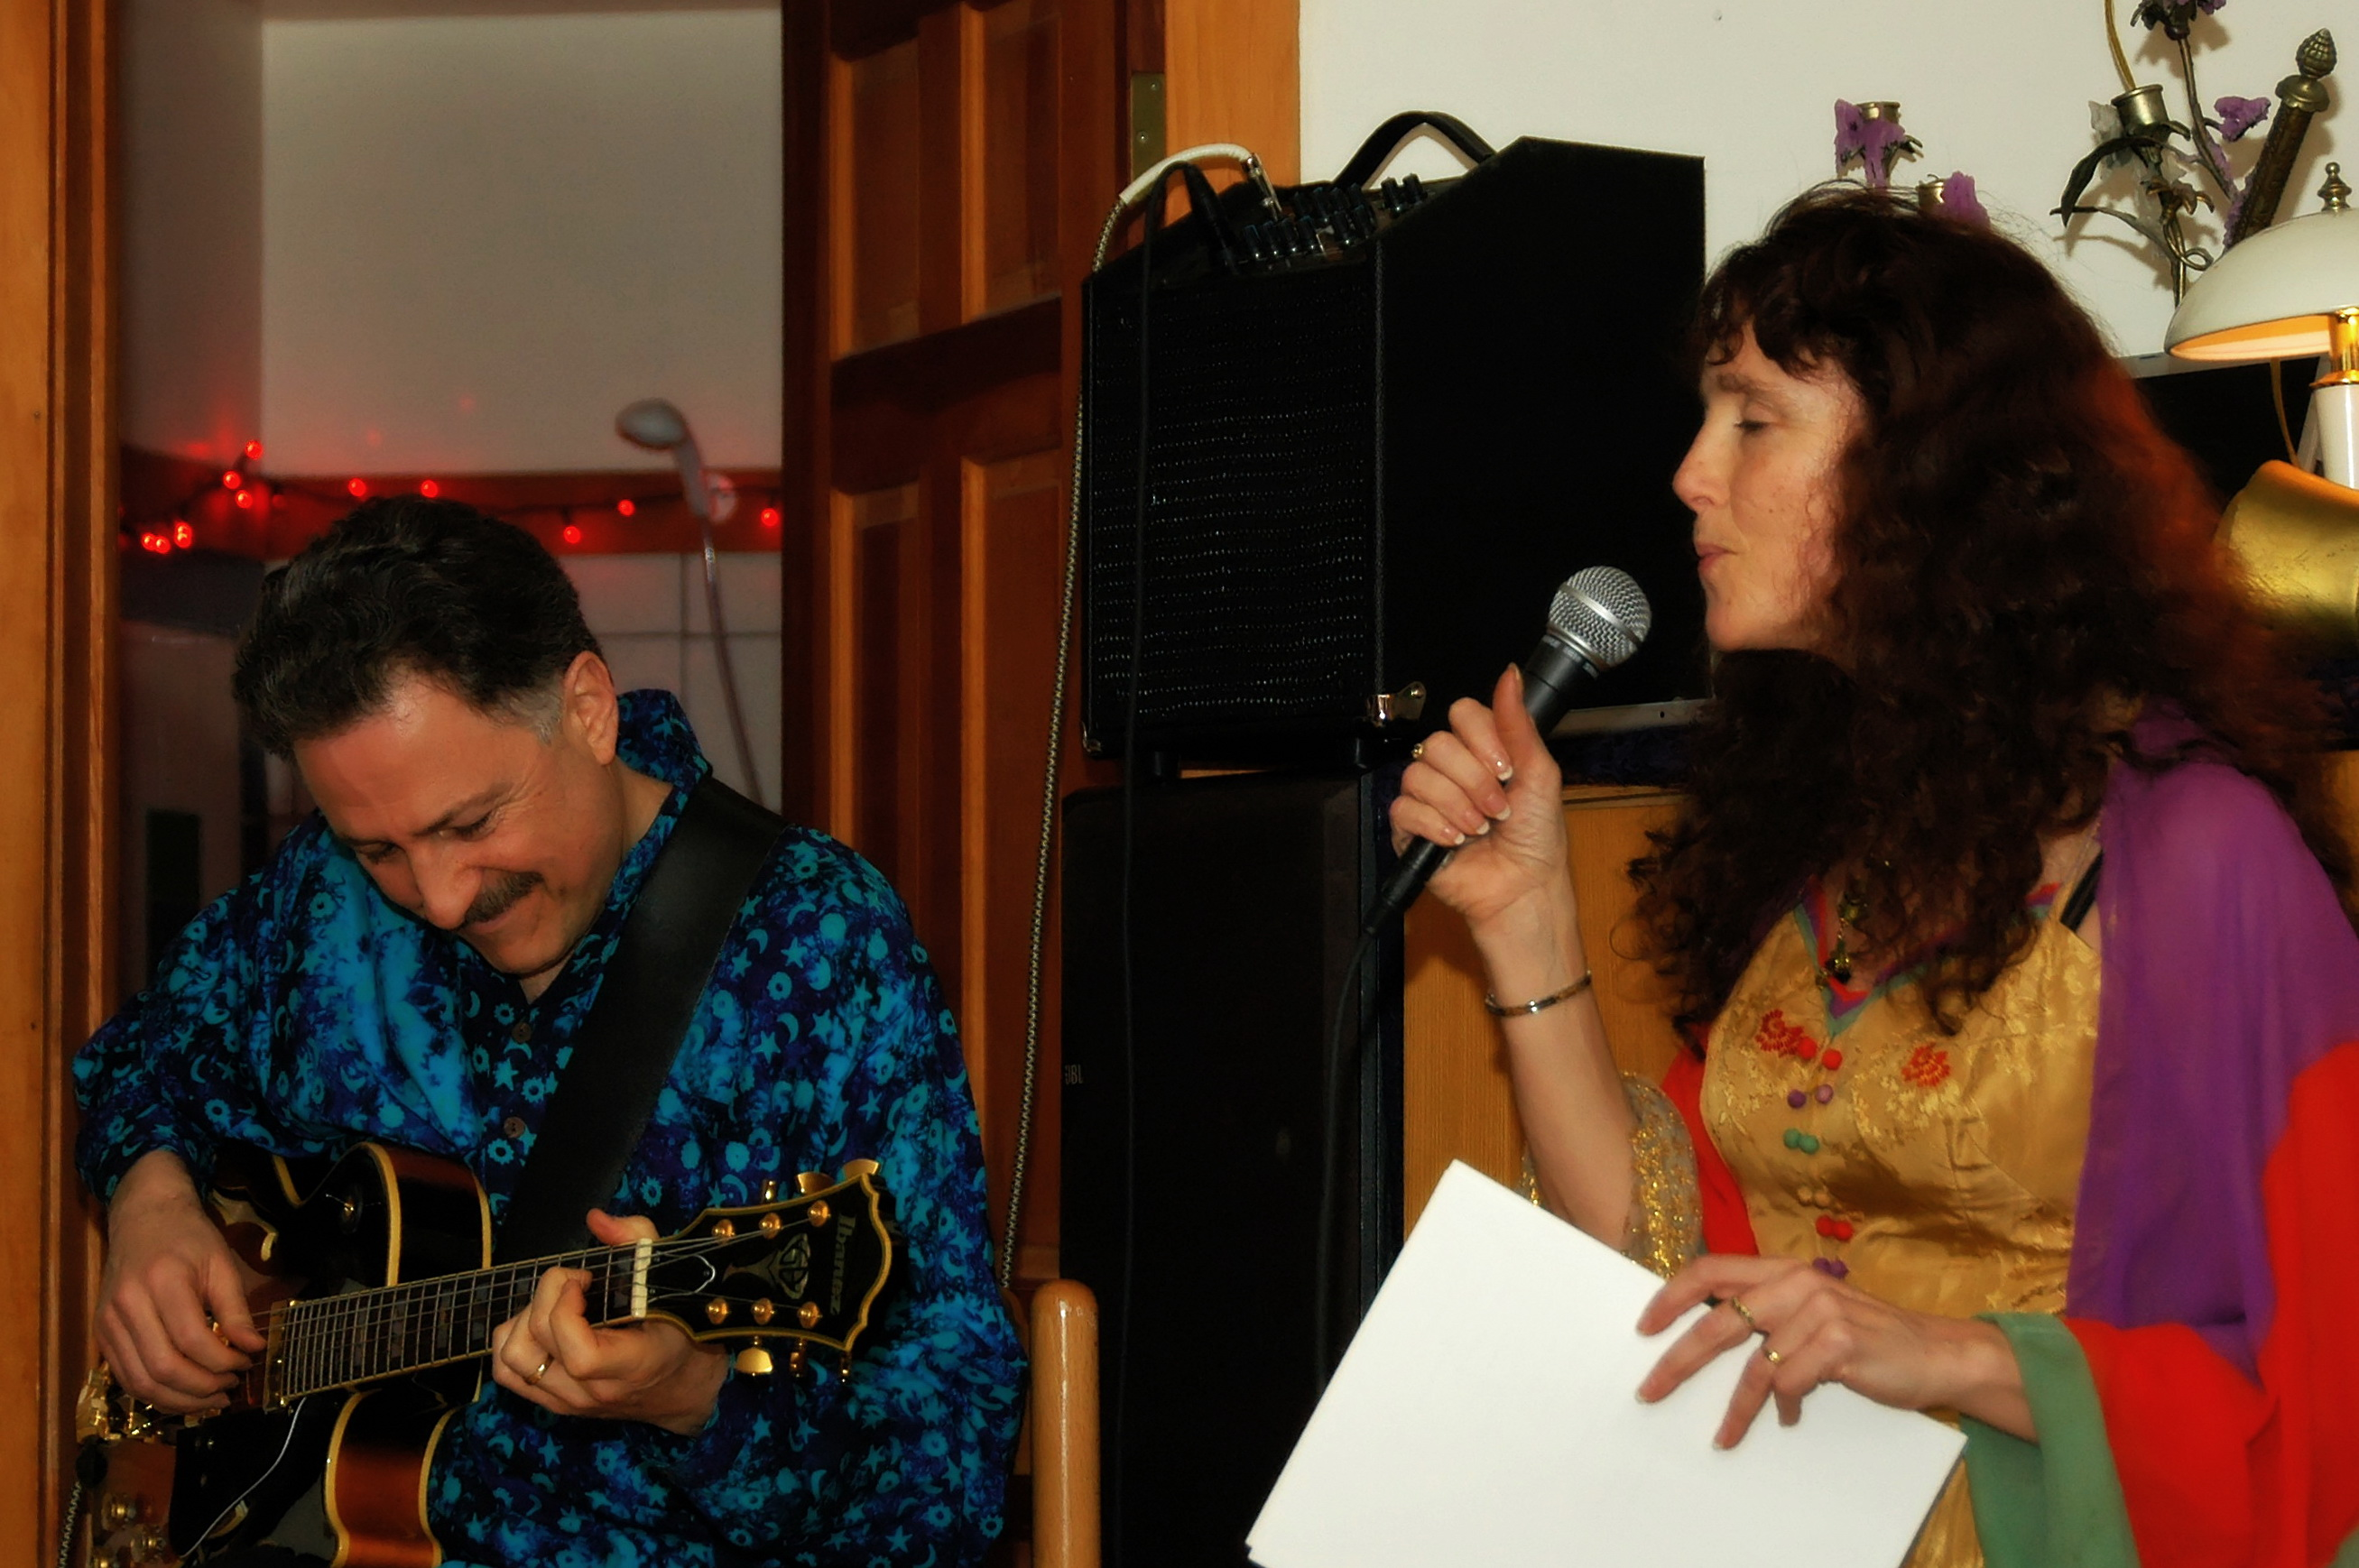 Paul and Penny perform at Davio's party.